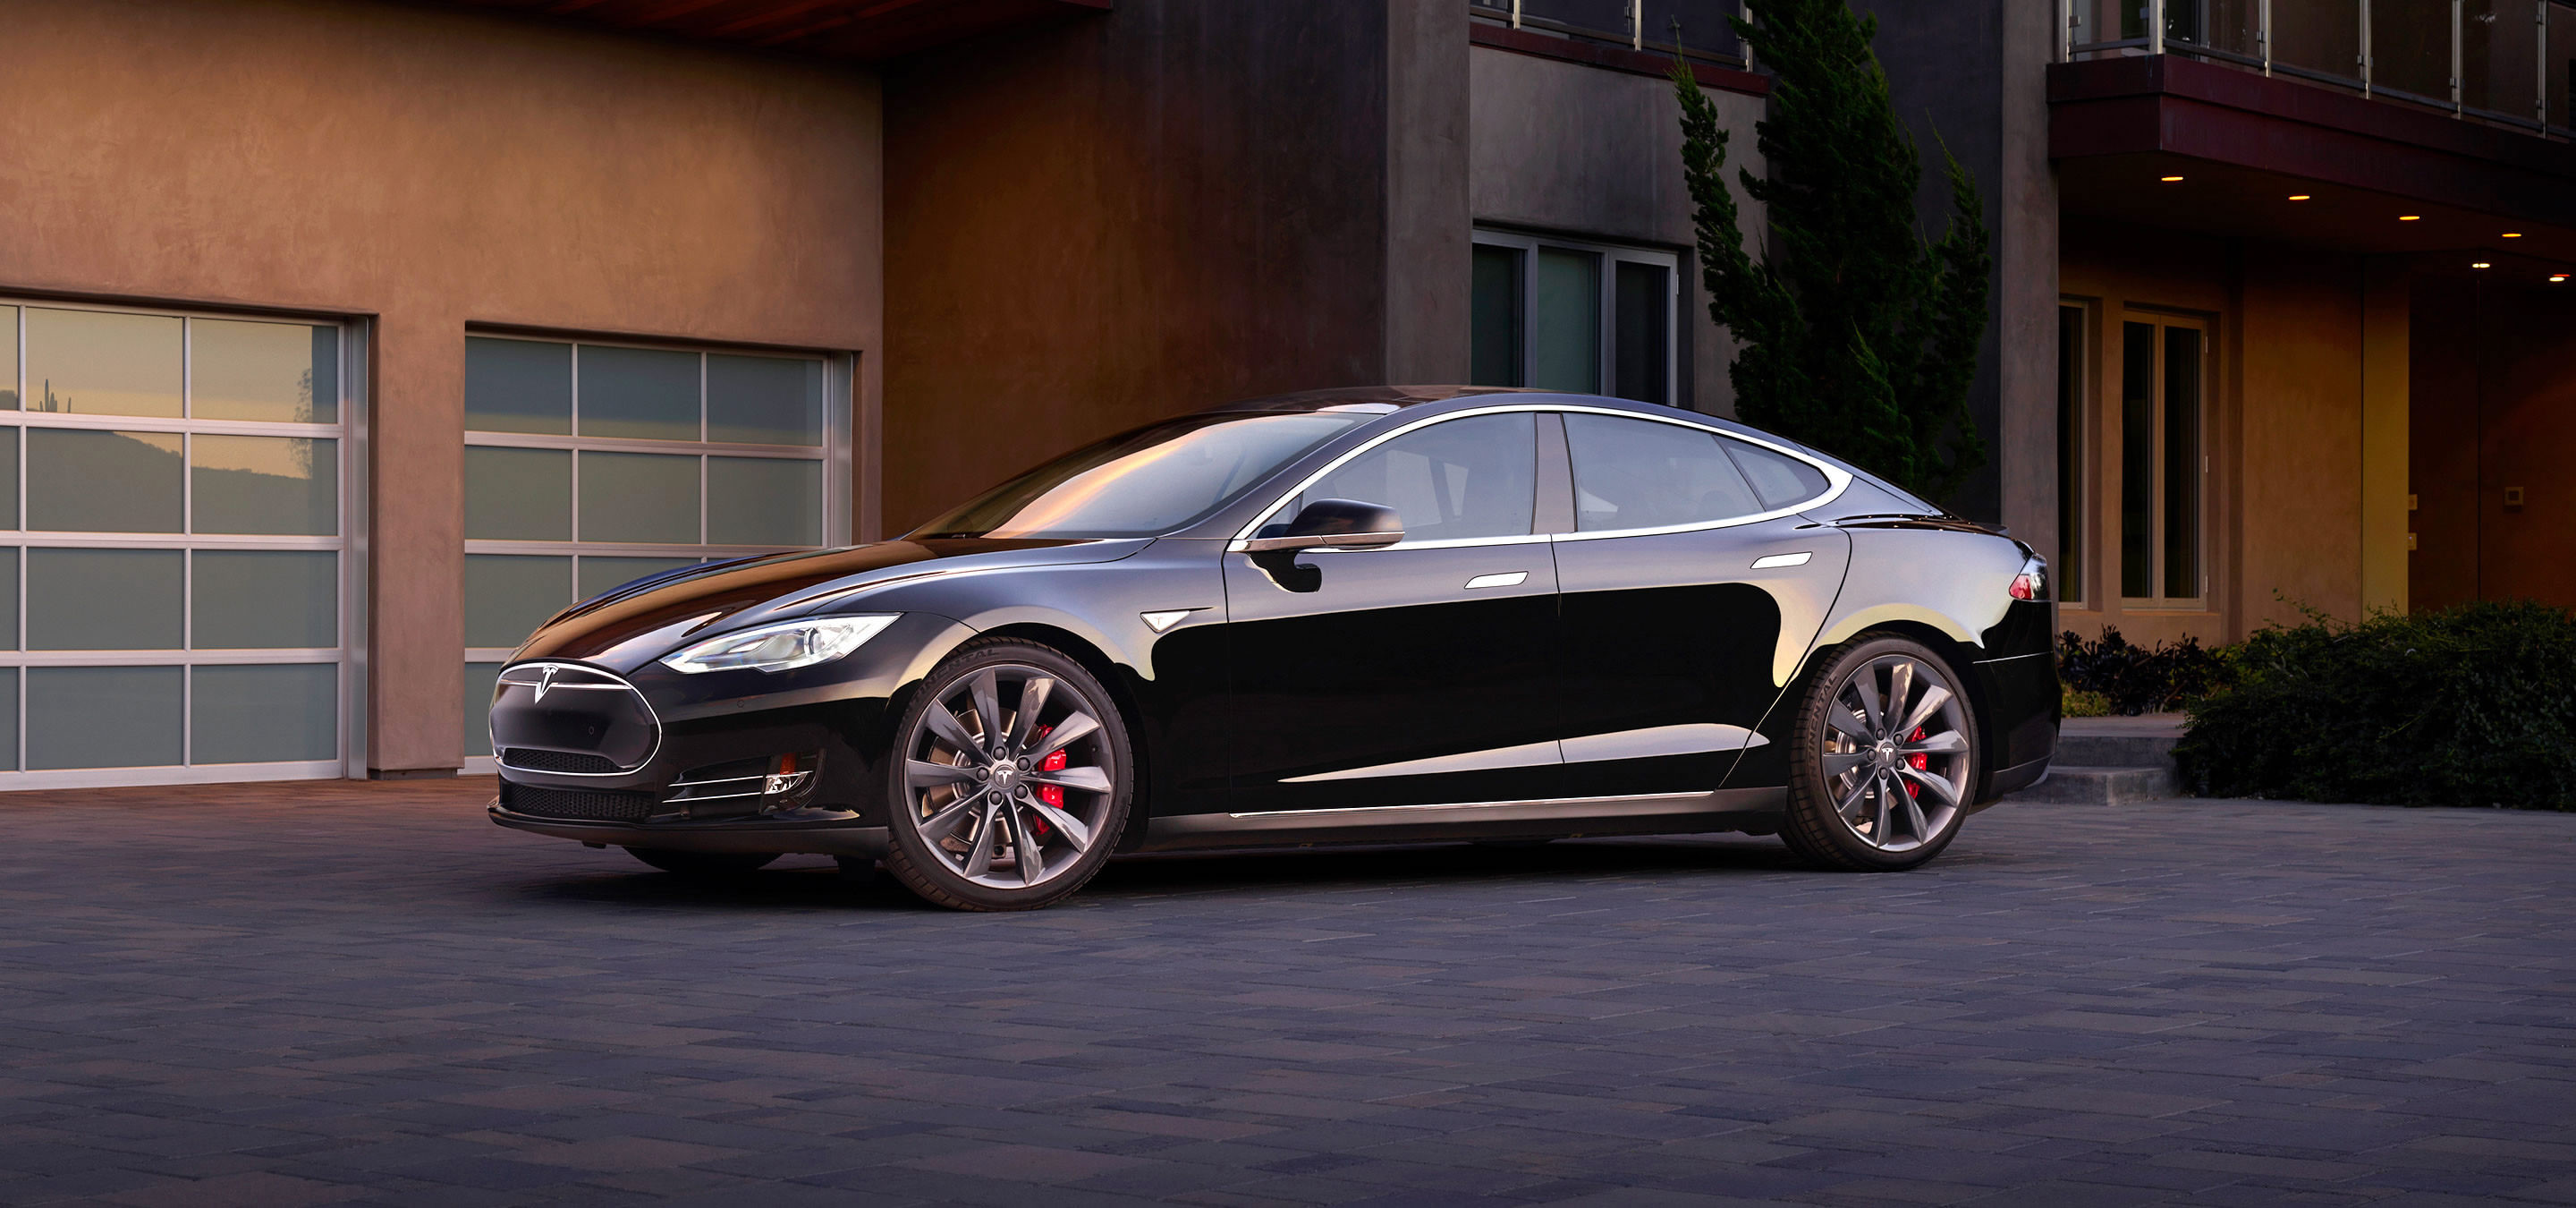 http://www.teslamotors.com/sites/default/files/images/model-s/gallery/exterior/hero-01.jpg?20151030